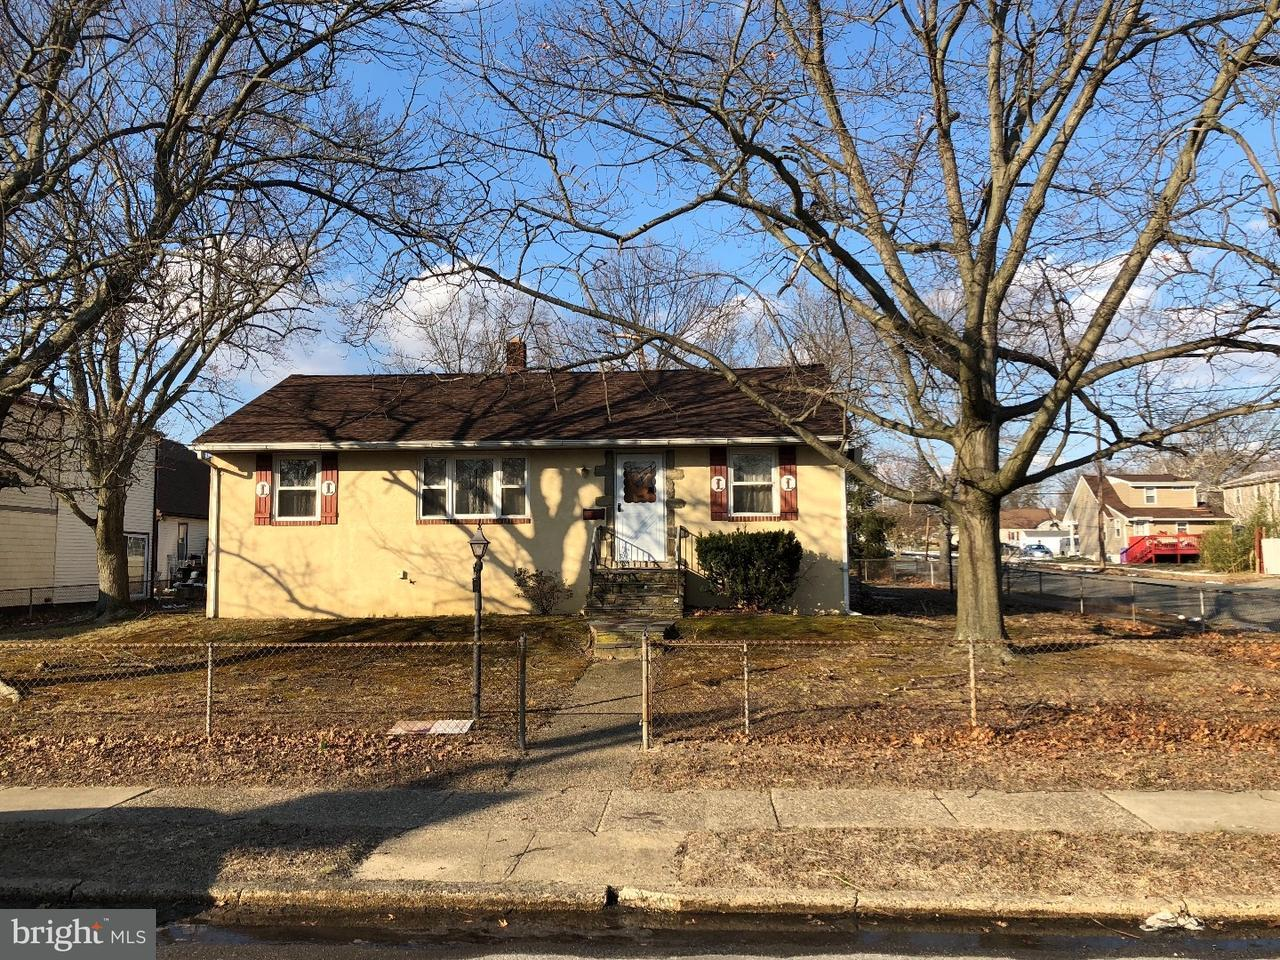 Local Real Estate: Foreclosures for Sale — National Park, NJ ...